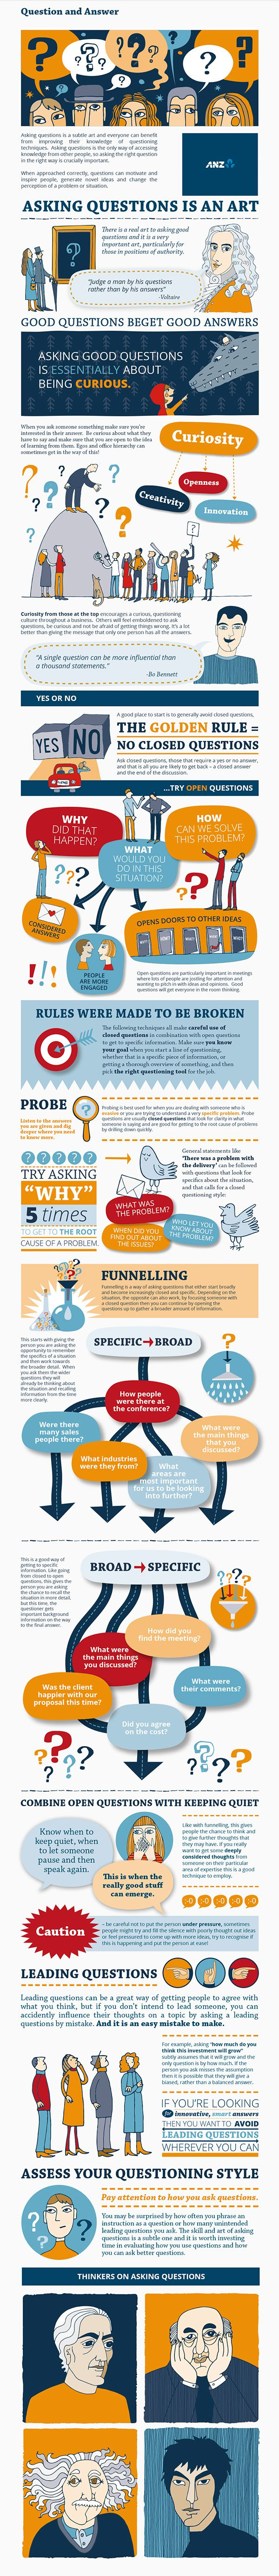 The Art of Asking Questions {Infographic}: Ask Questions, Behance, Schools Stuff, Asking Questions, Questions Infographic, Teacher, Anastasia Beltyukova, Infographics, Answers Infographic